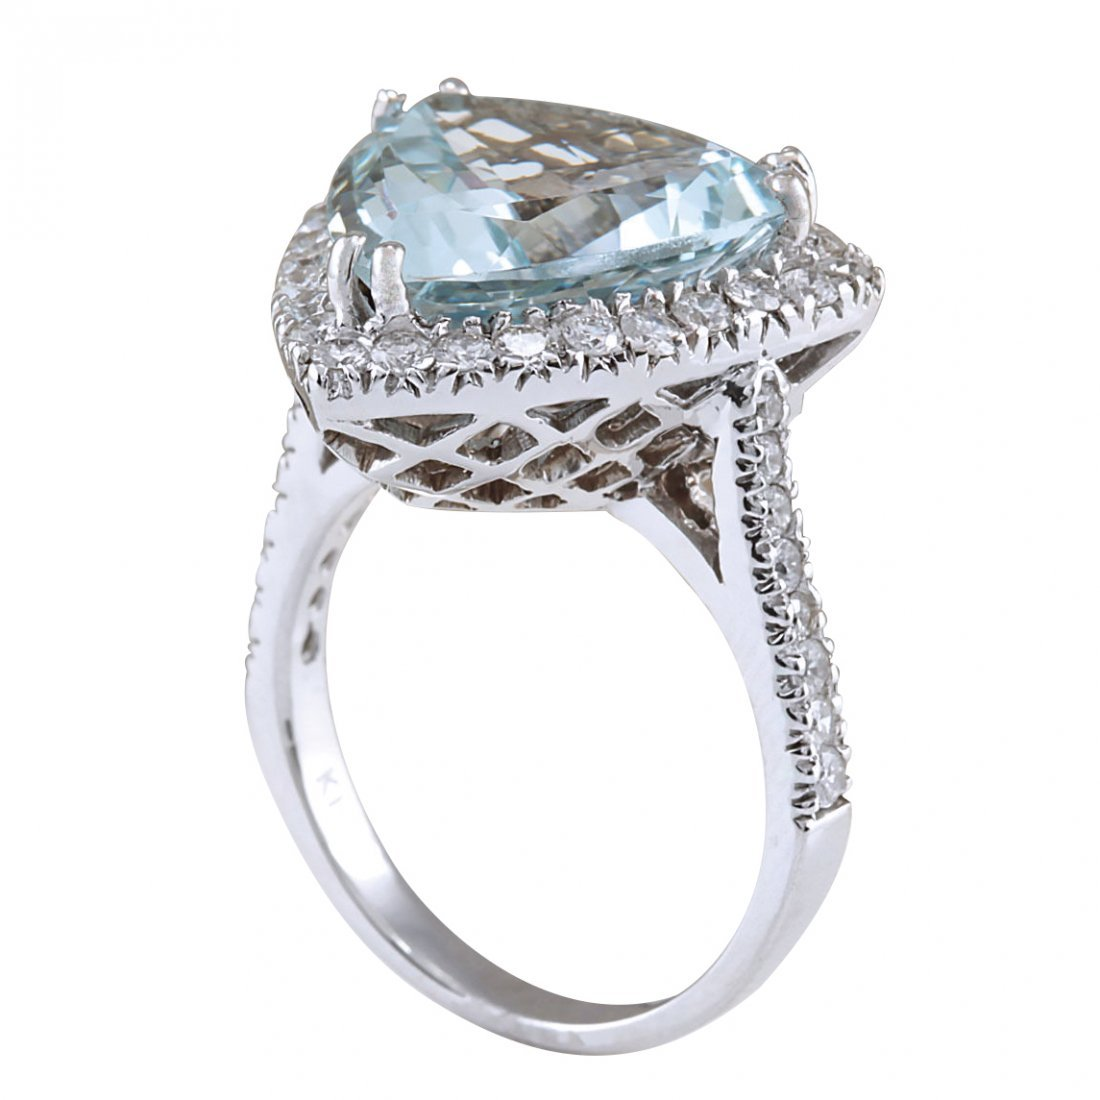 8.96CTW Natural Aquamarine And Diamond Ring In 14K - 3